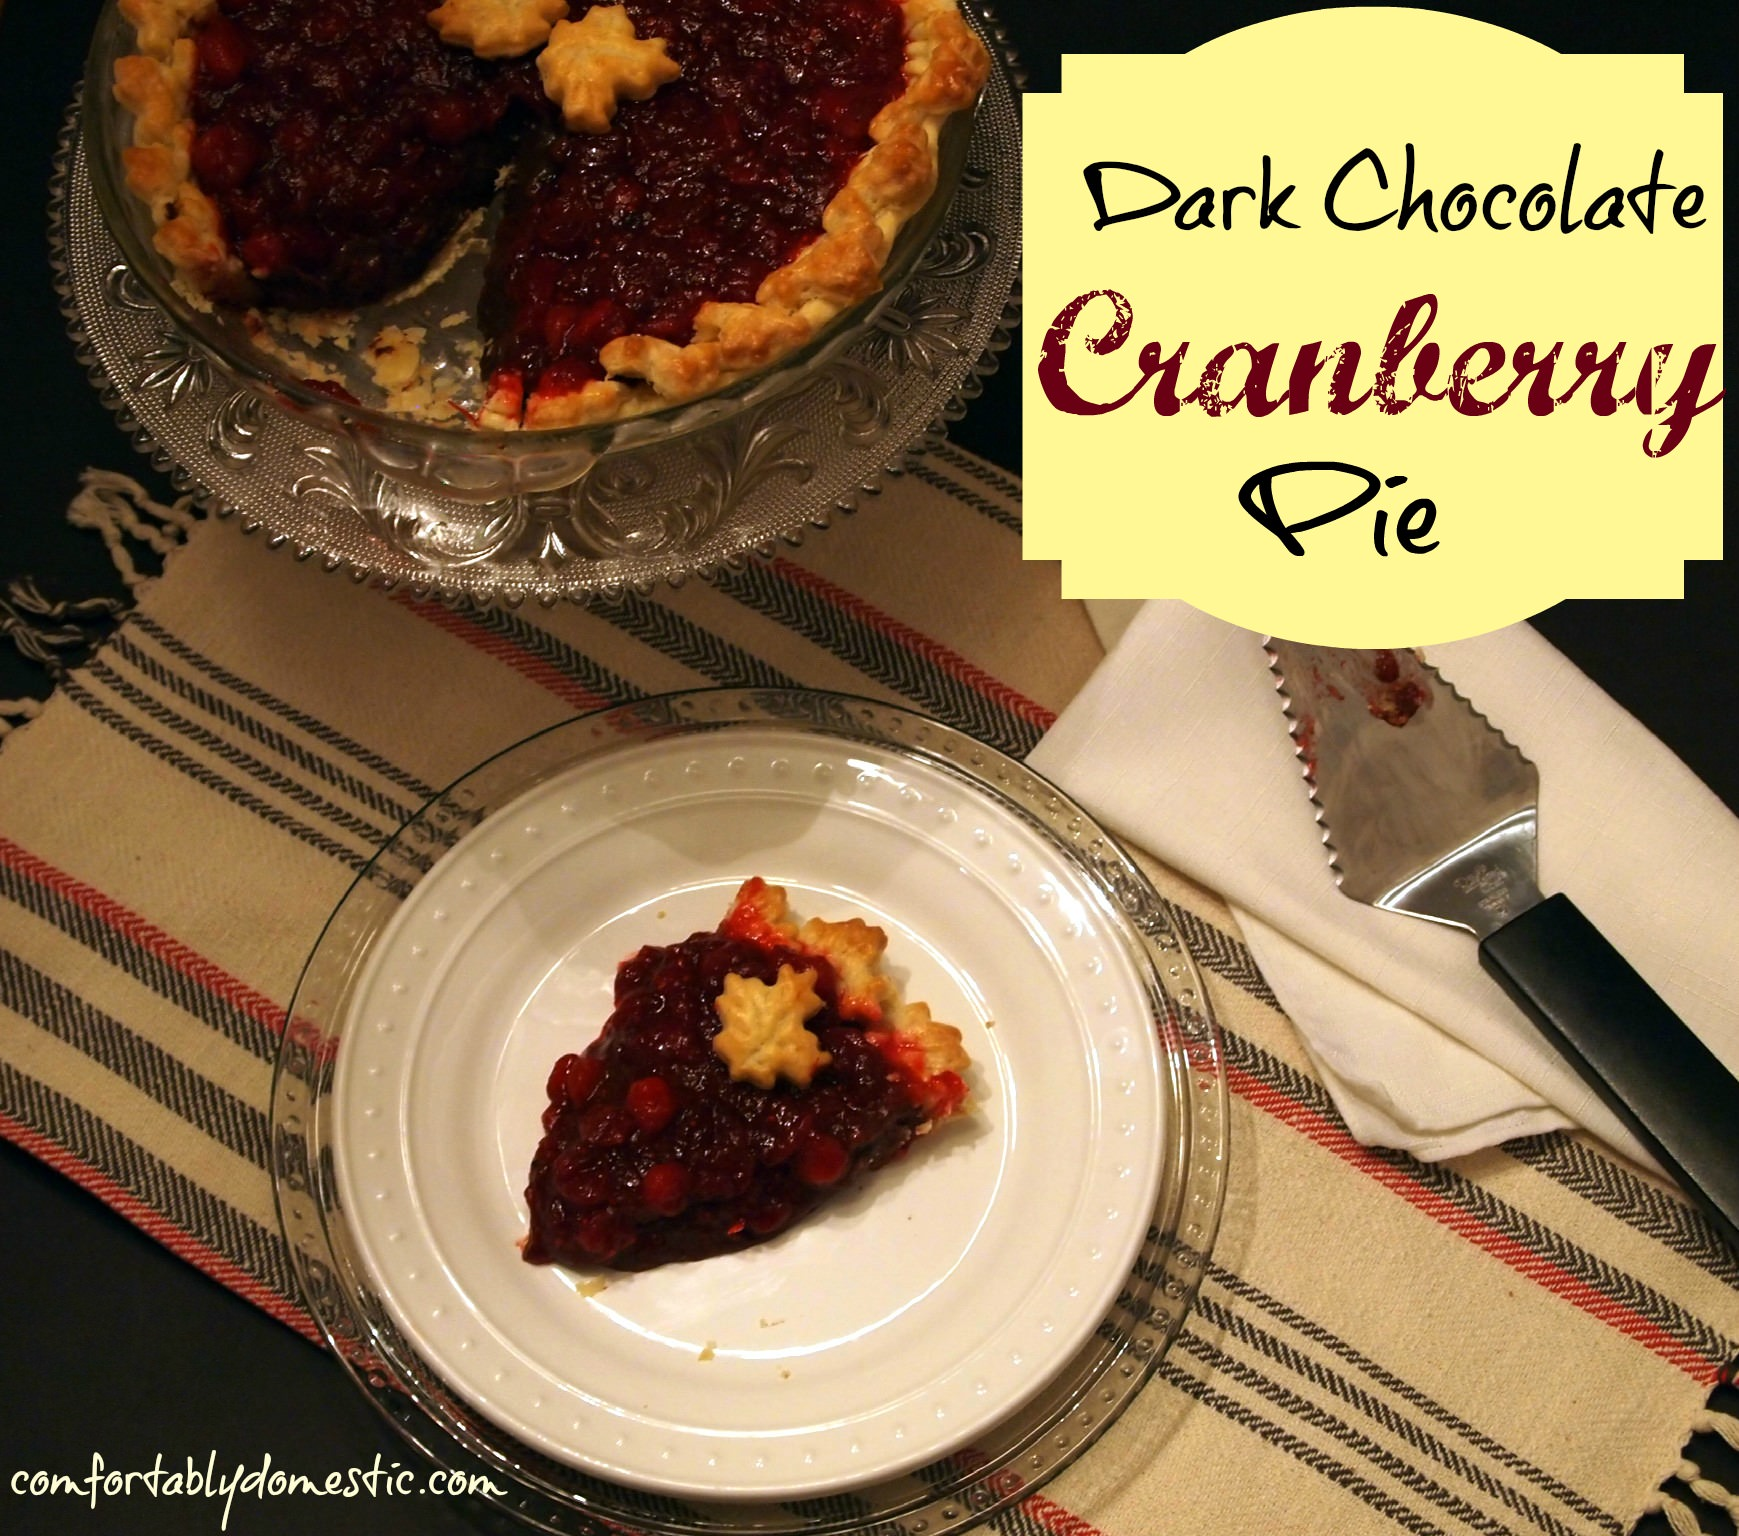 Dark chocolate cranberry pie may become your new favorite holiday pie recipe! Dark chocolate pie, topped with tart, fresh cranberry sauce, all baked into a flaky pie crust.